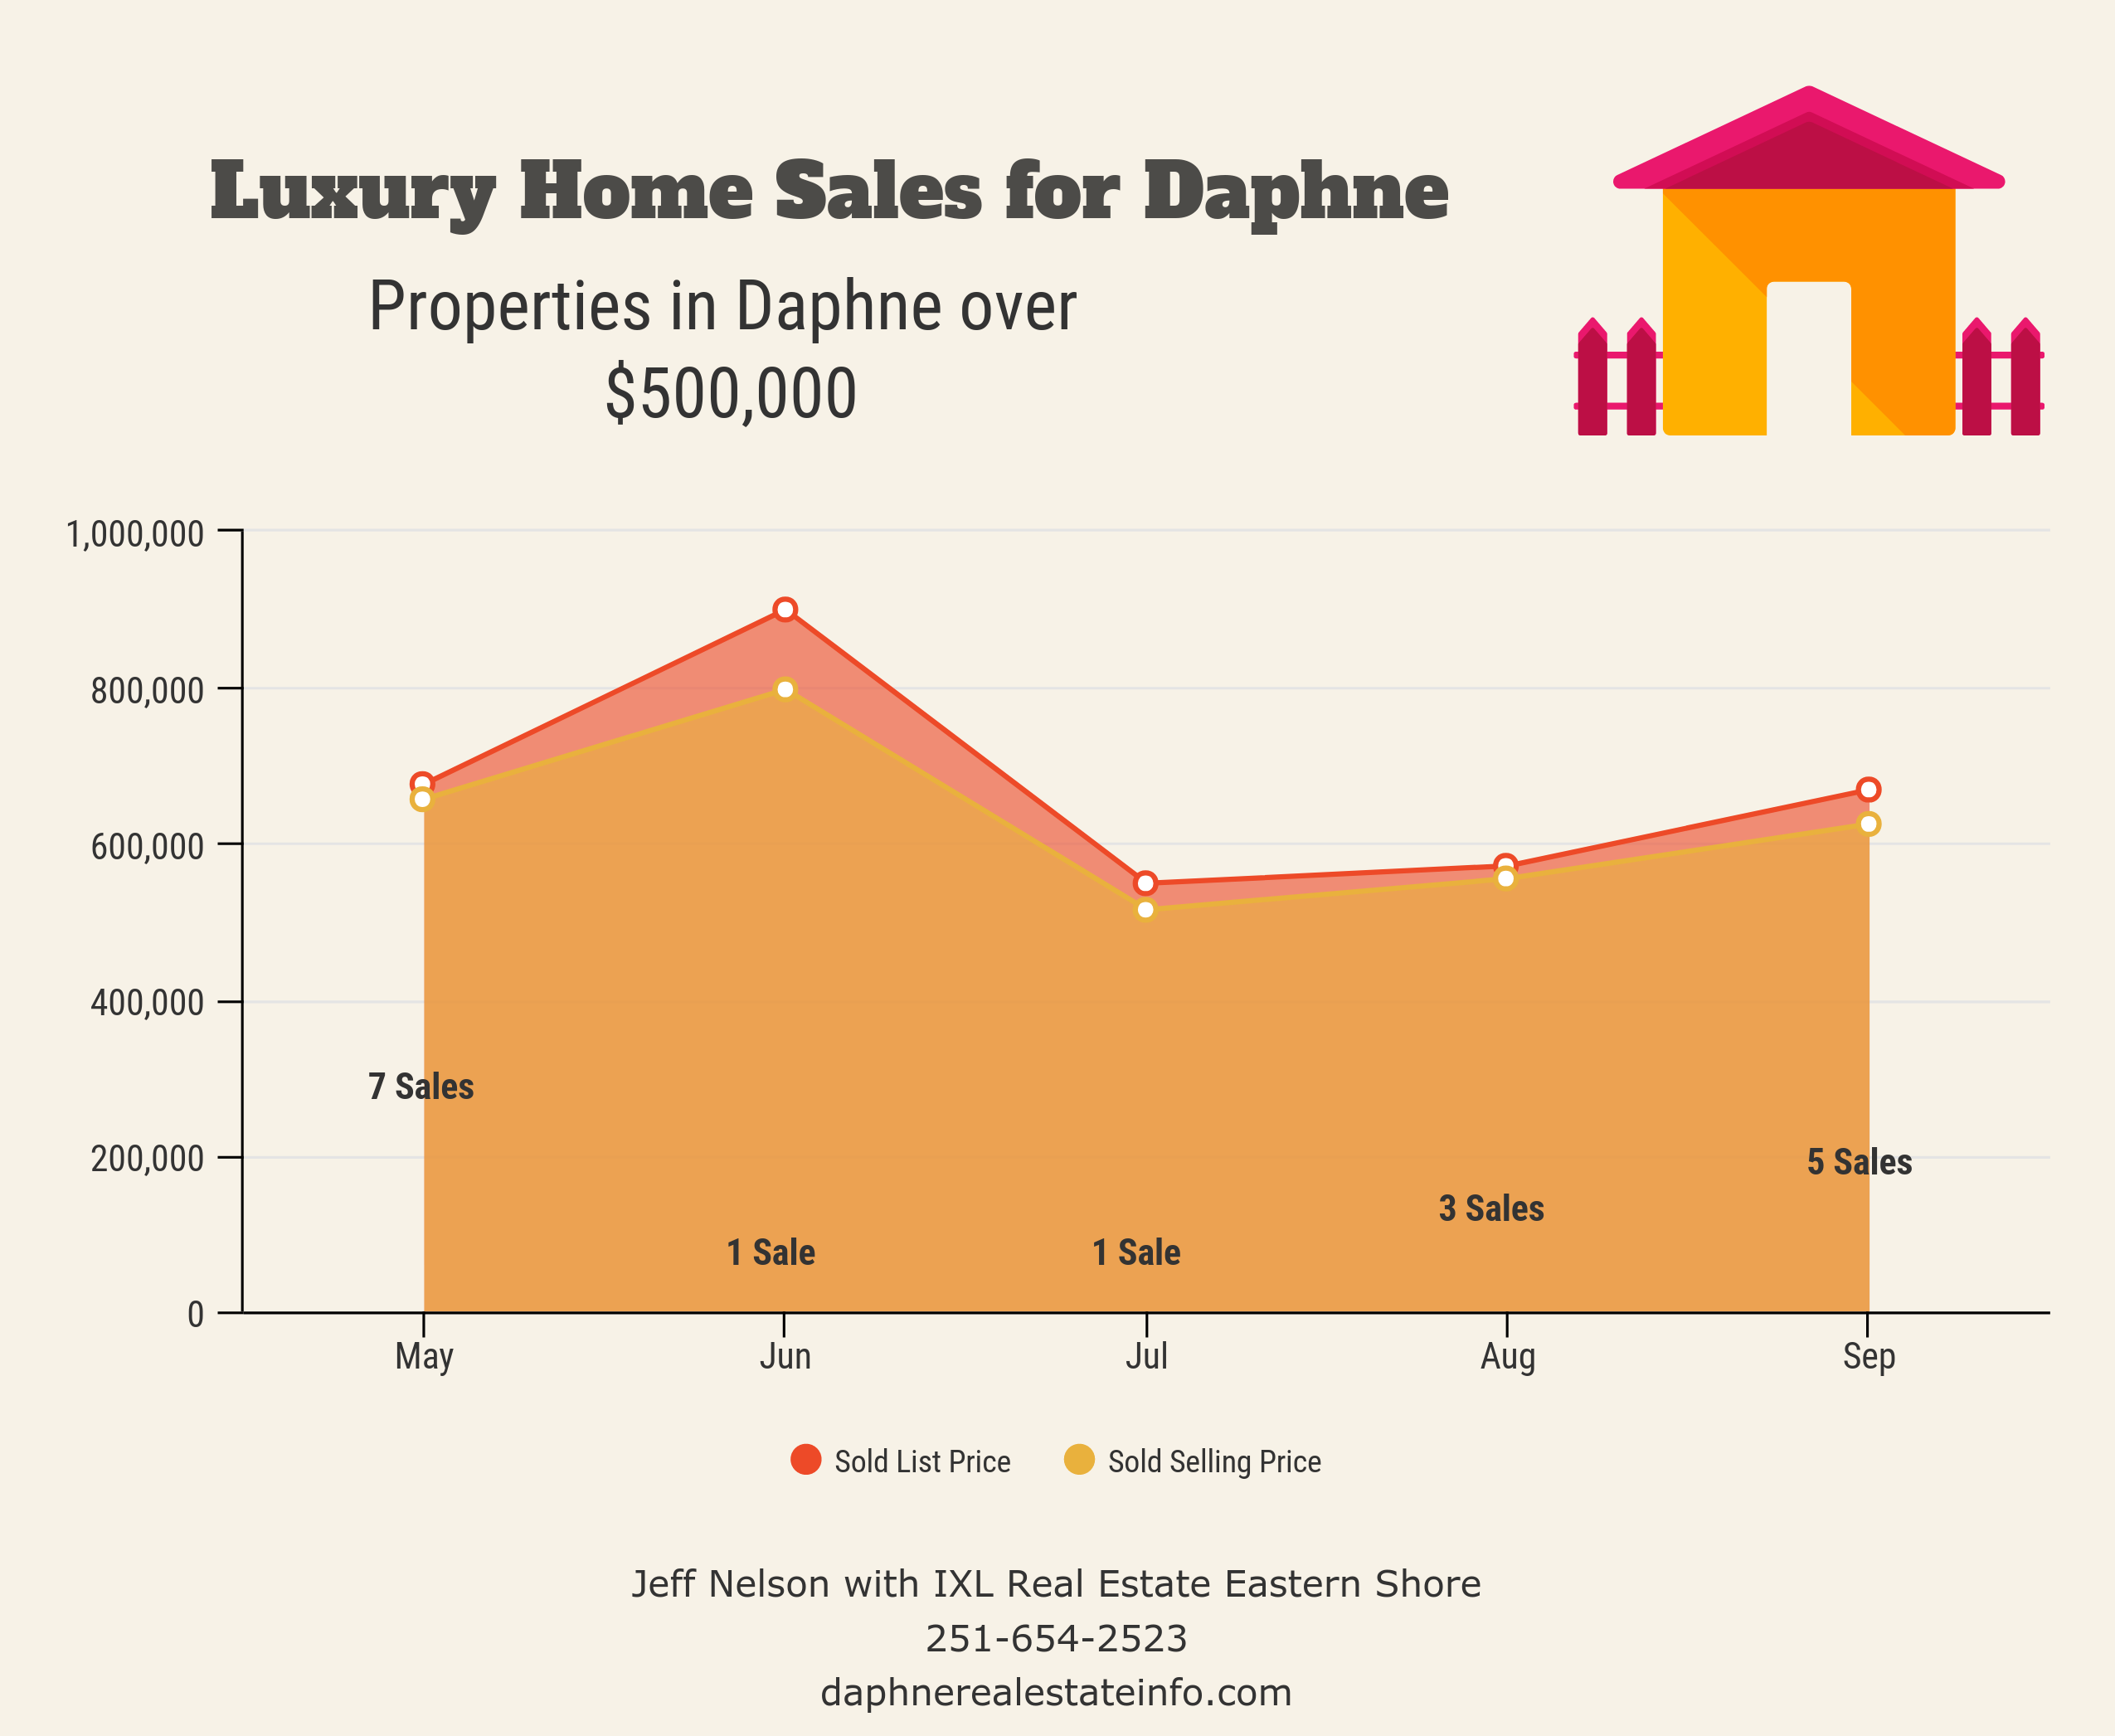 Luxury Daphne Home Sales Chart - Sept 2019